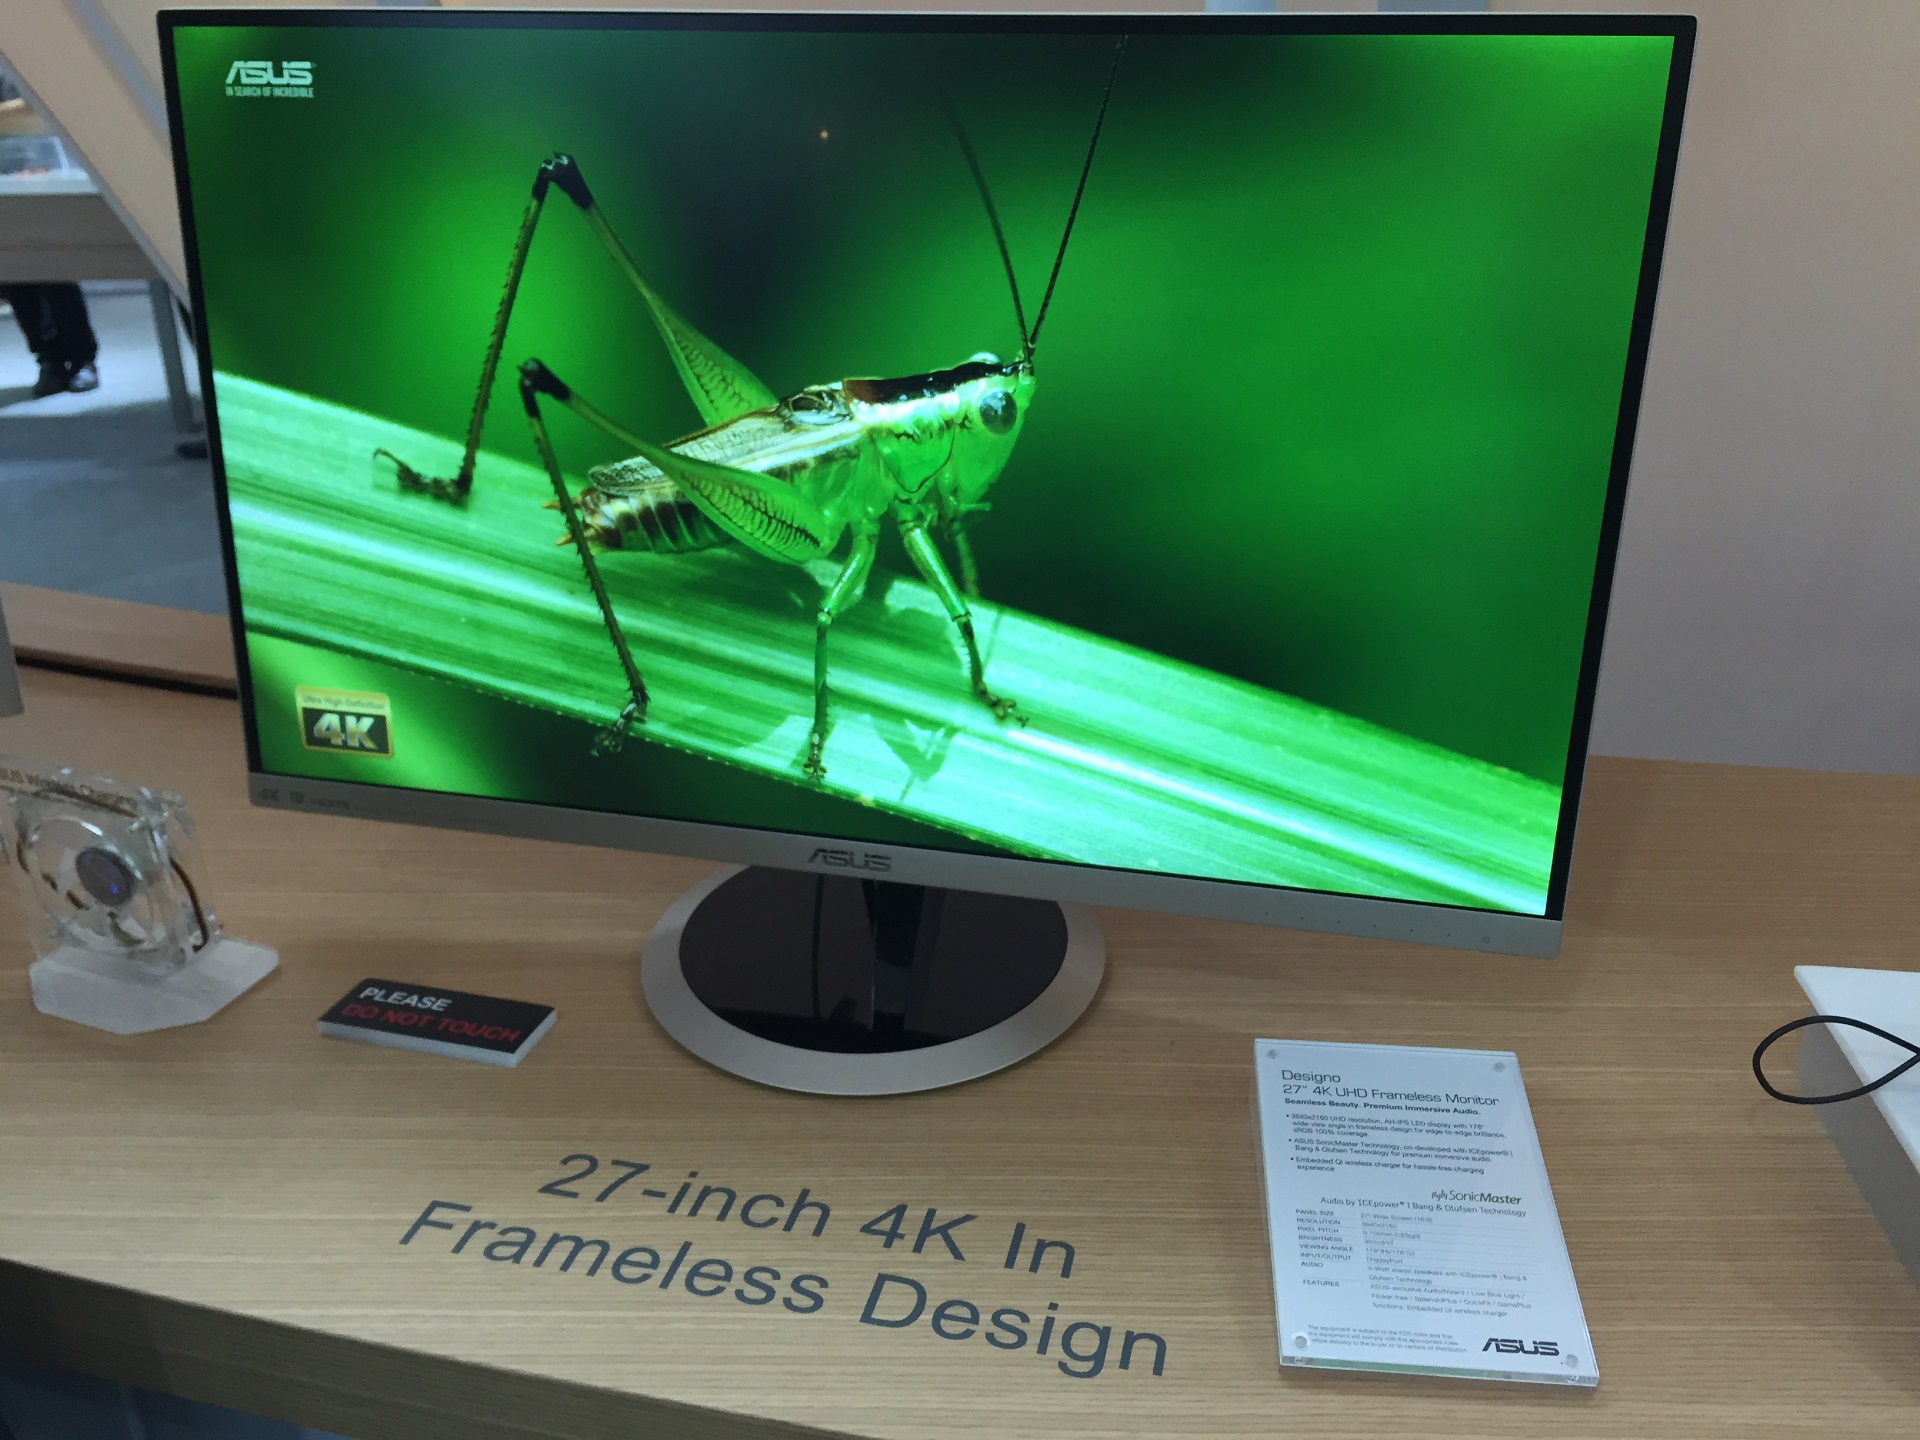 asus lx34 ultrawide qhd ips 21 9 curved monitor 27 4k frameless